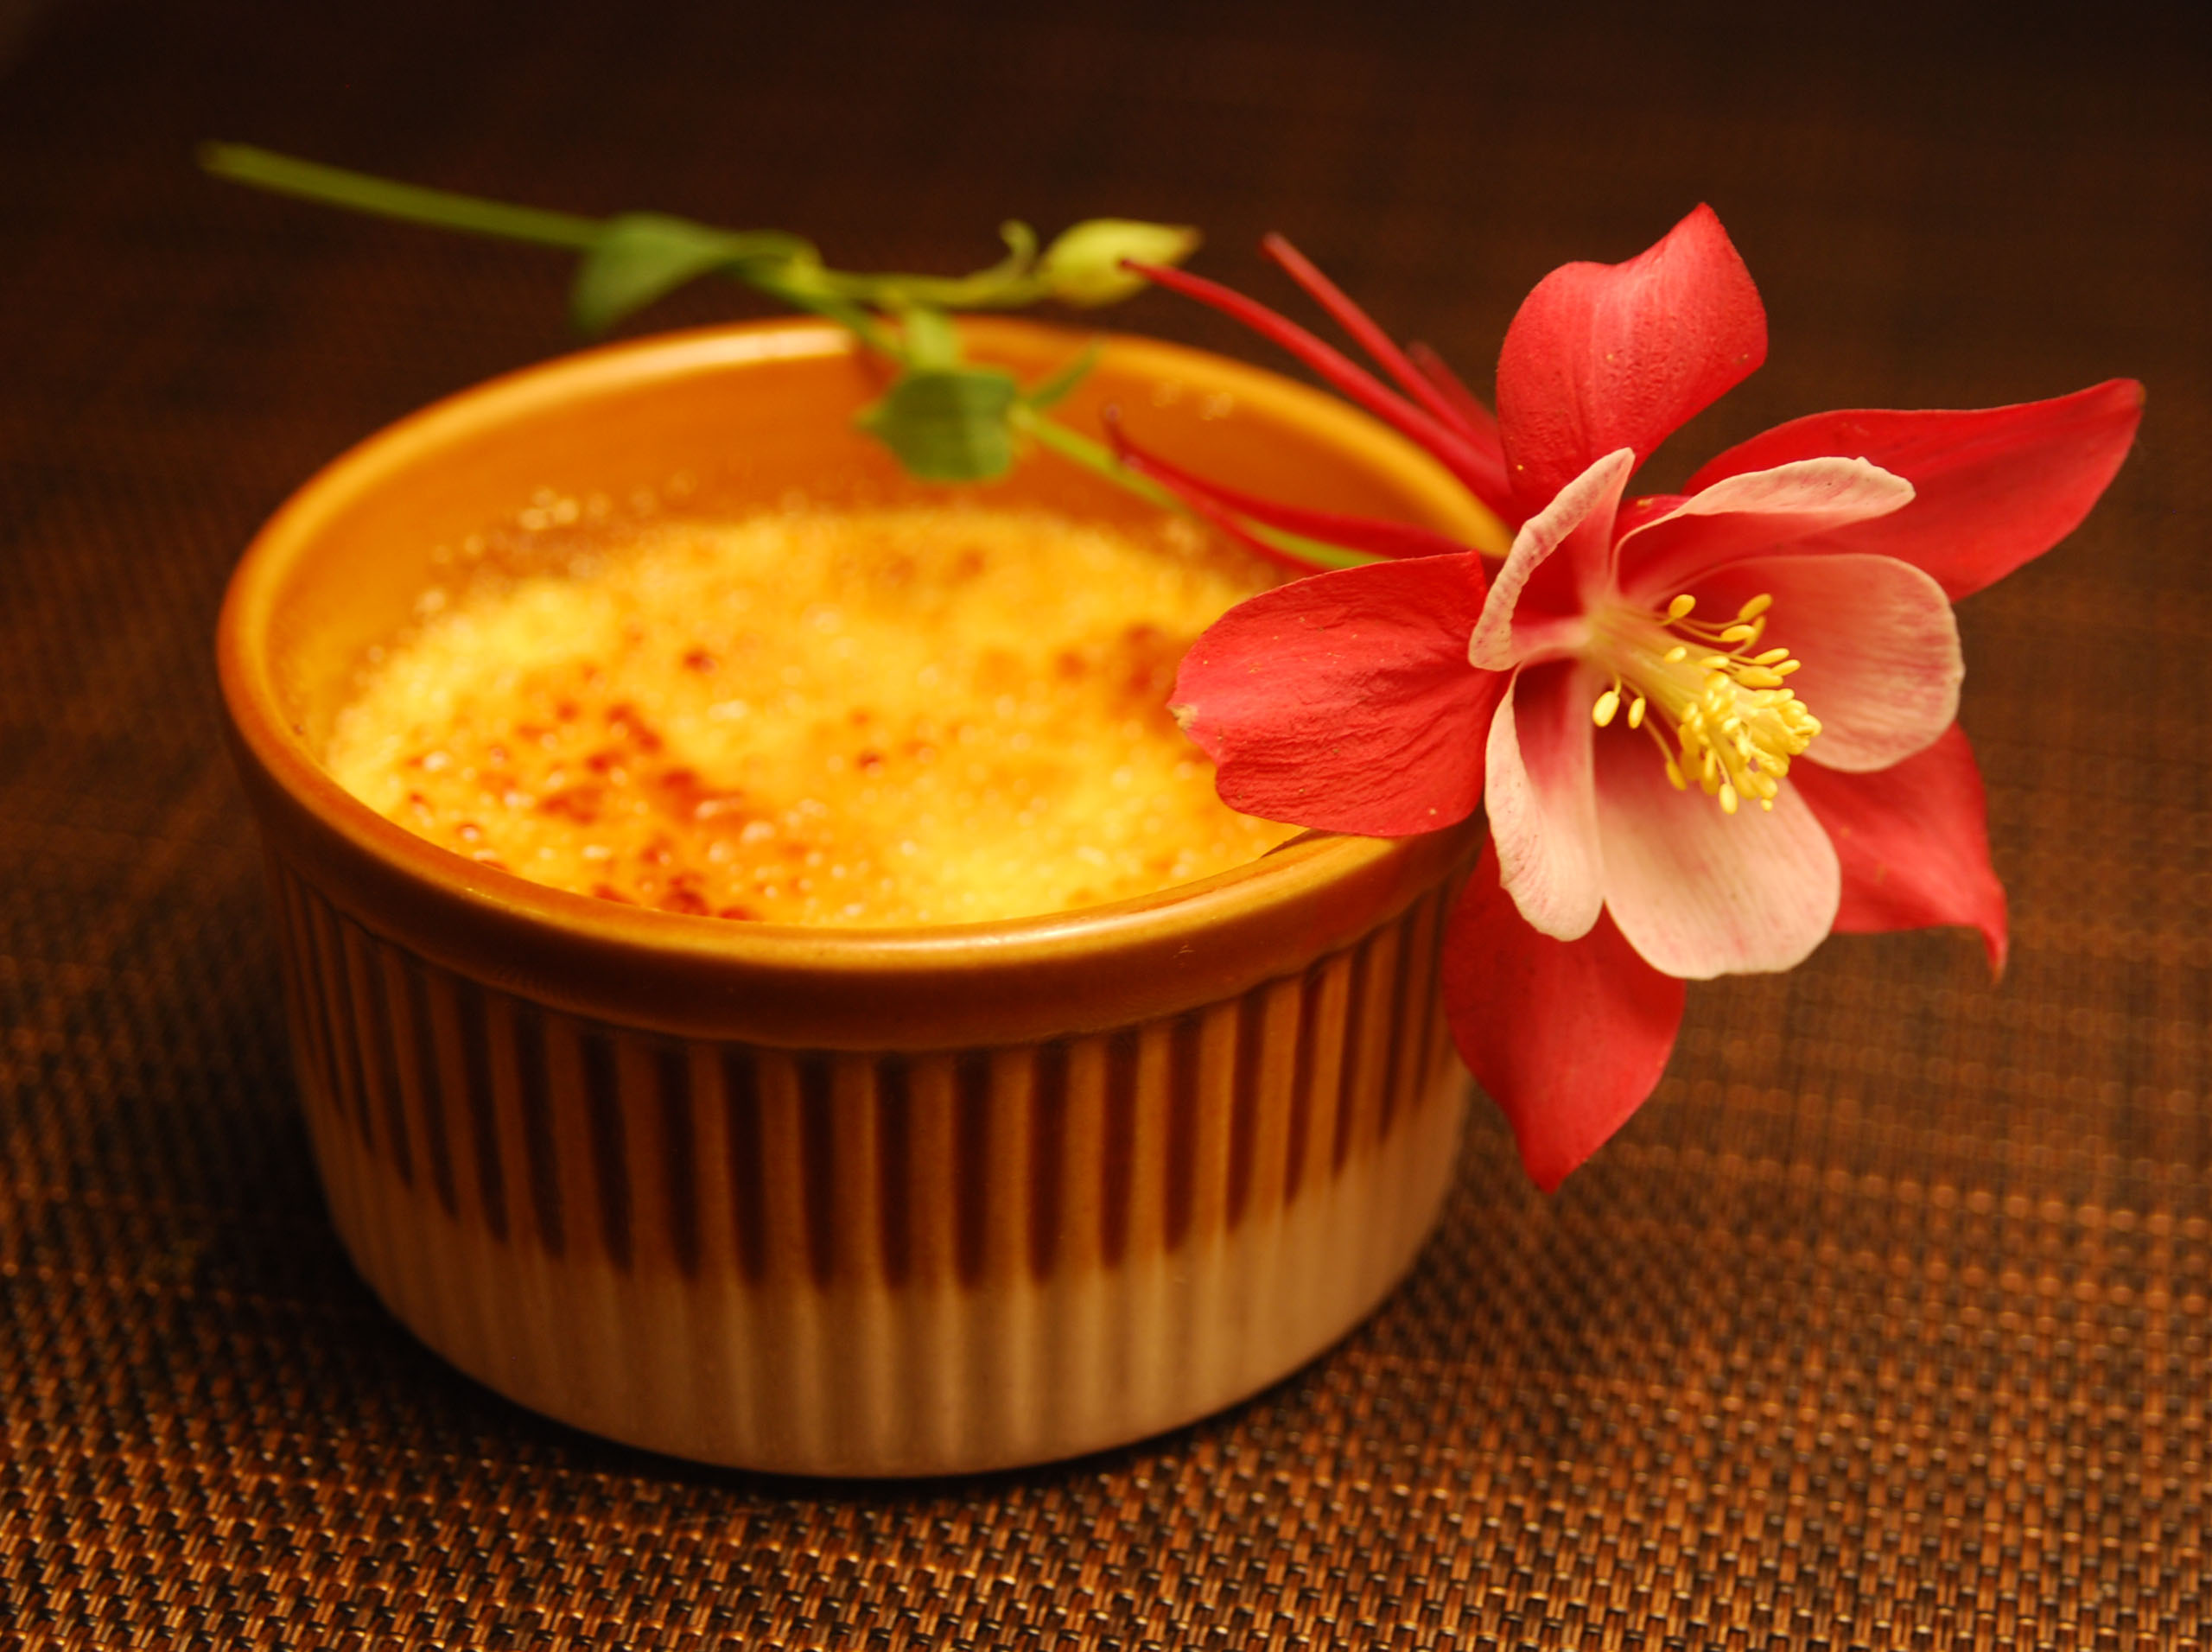 creme brulee | The poor, misunderstood calorie